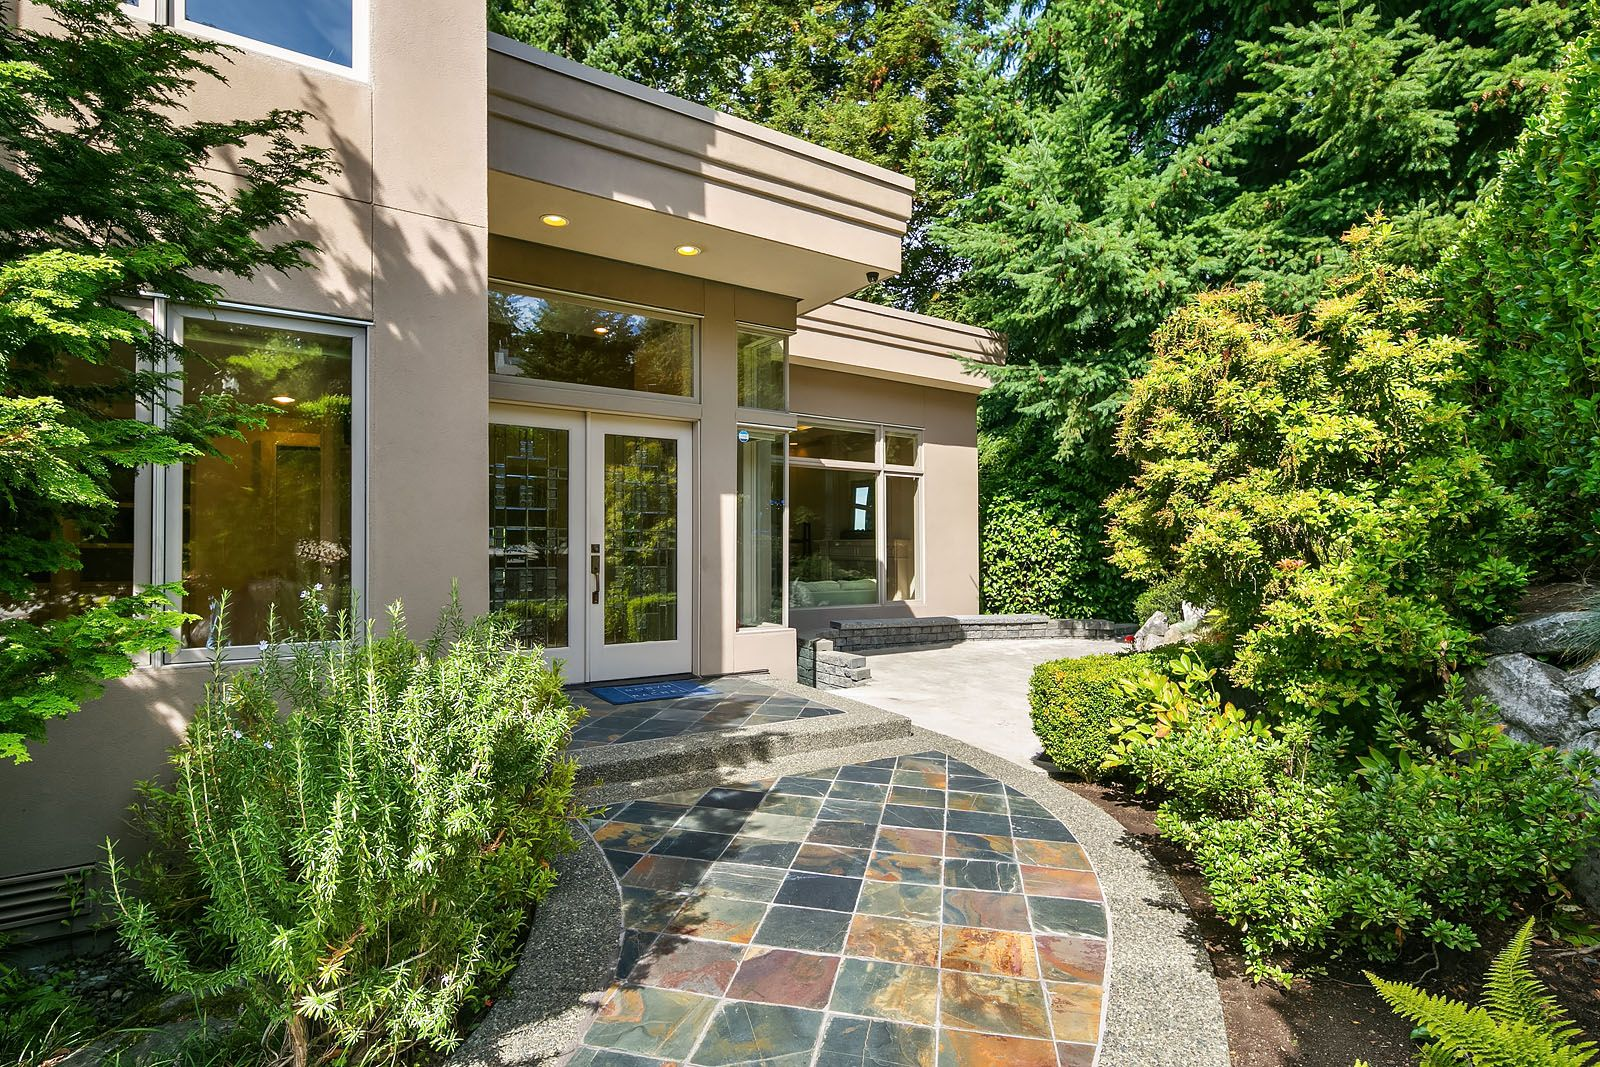 Single Family Homes for Sale at 4815 86th Ave SE, Mercer Island, WA 98040 4815 86th Ave SE Mercer Island, Washington 98040 United States